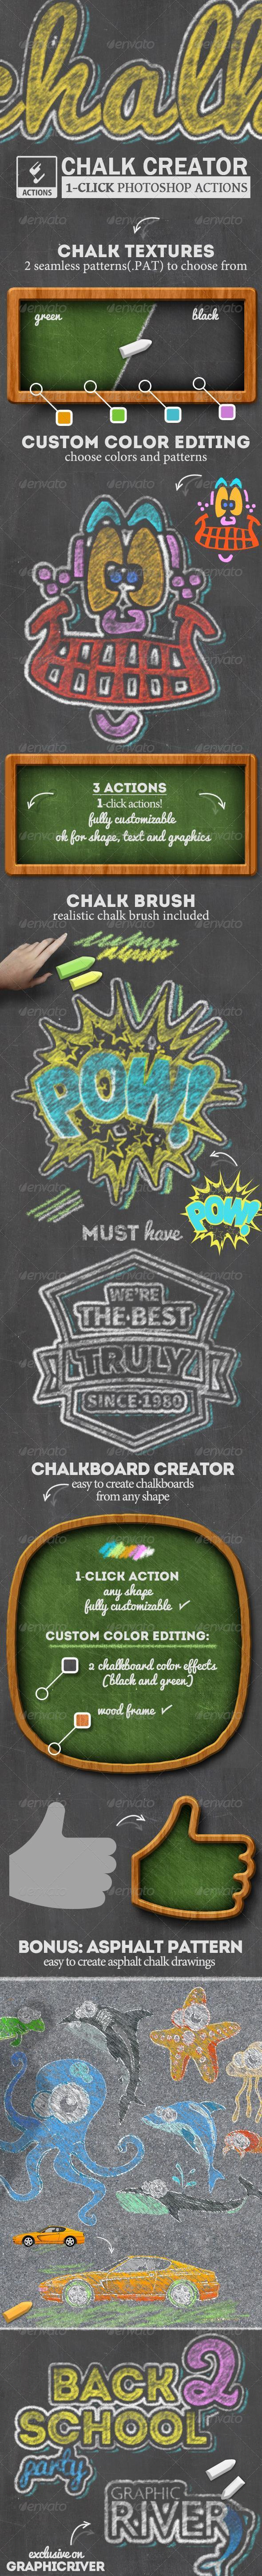 Chalk Style and Chalkboard Photoshop Creator